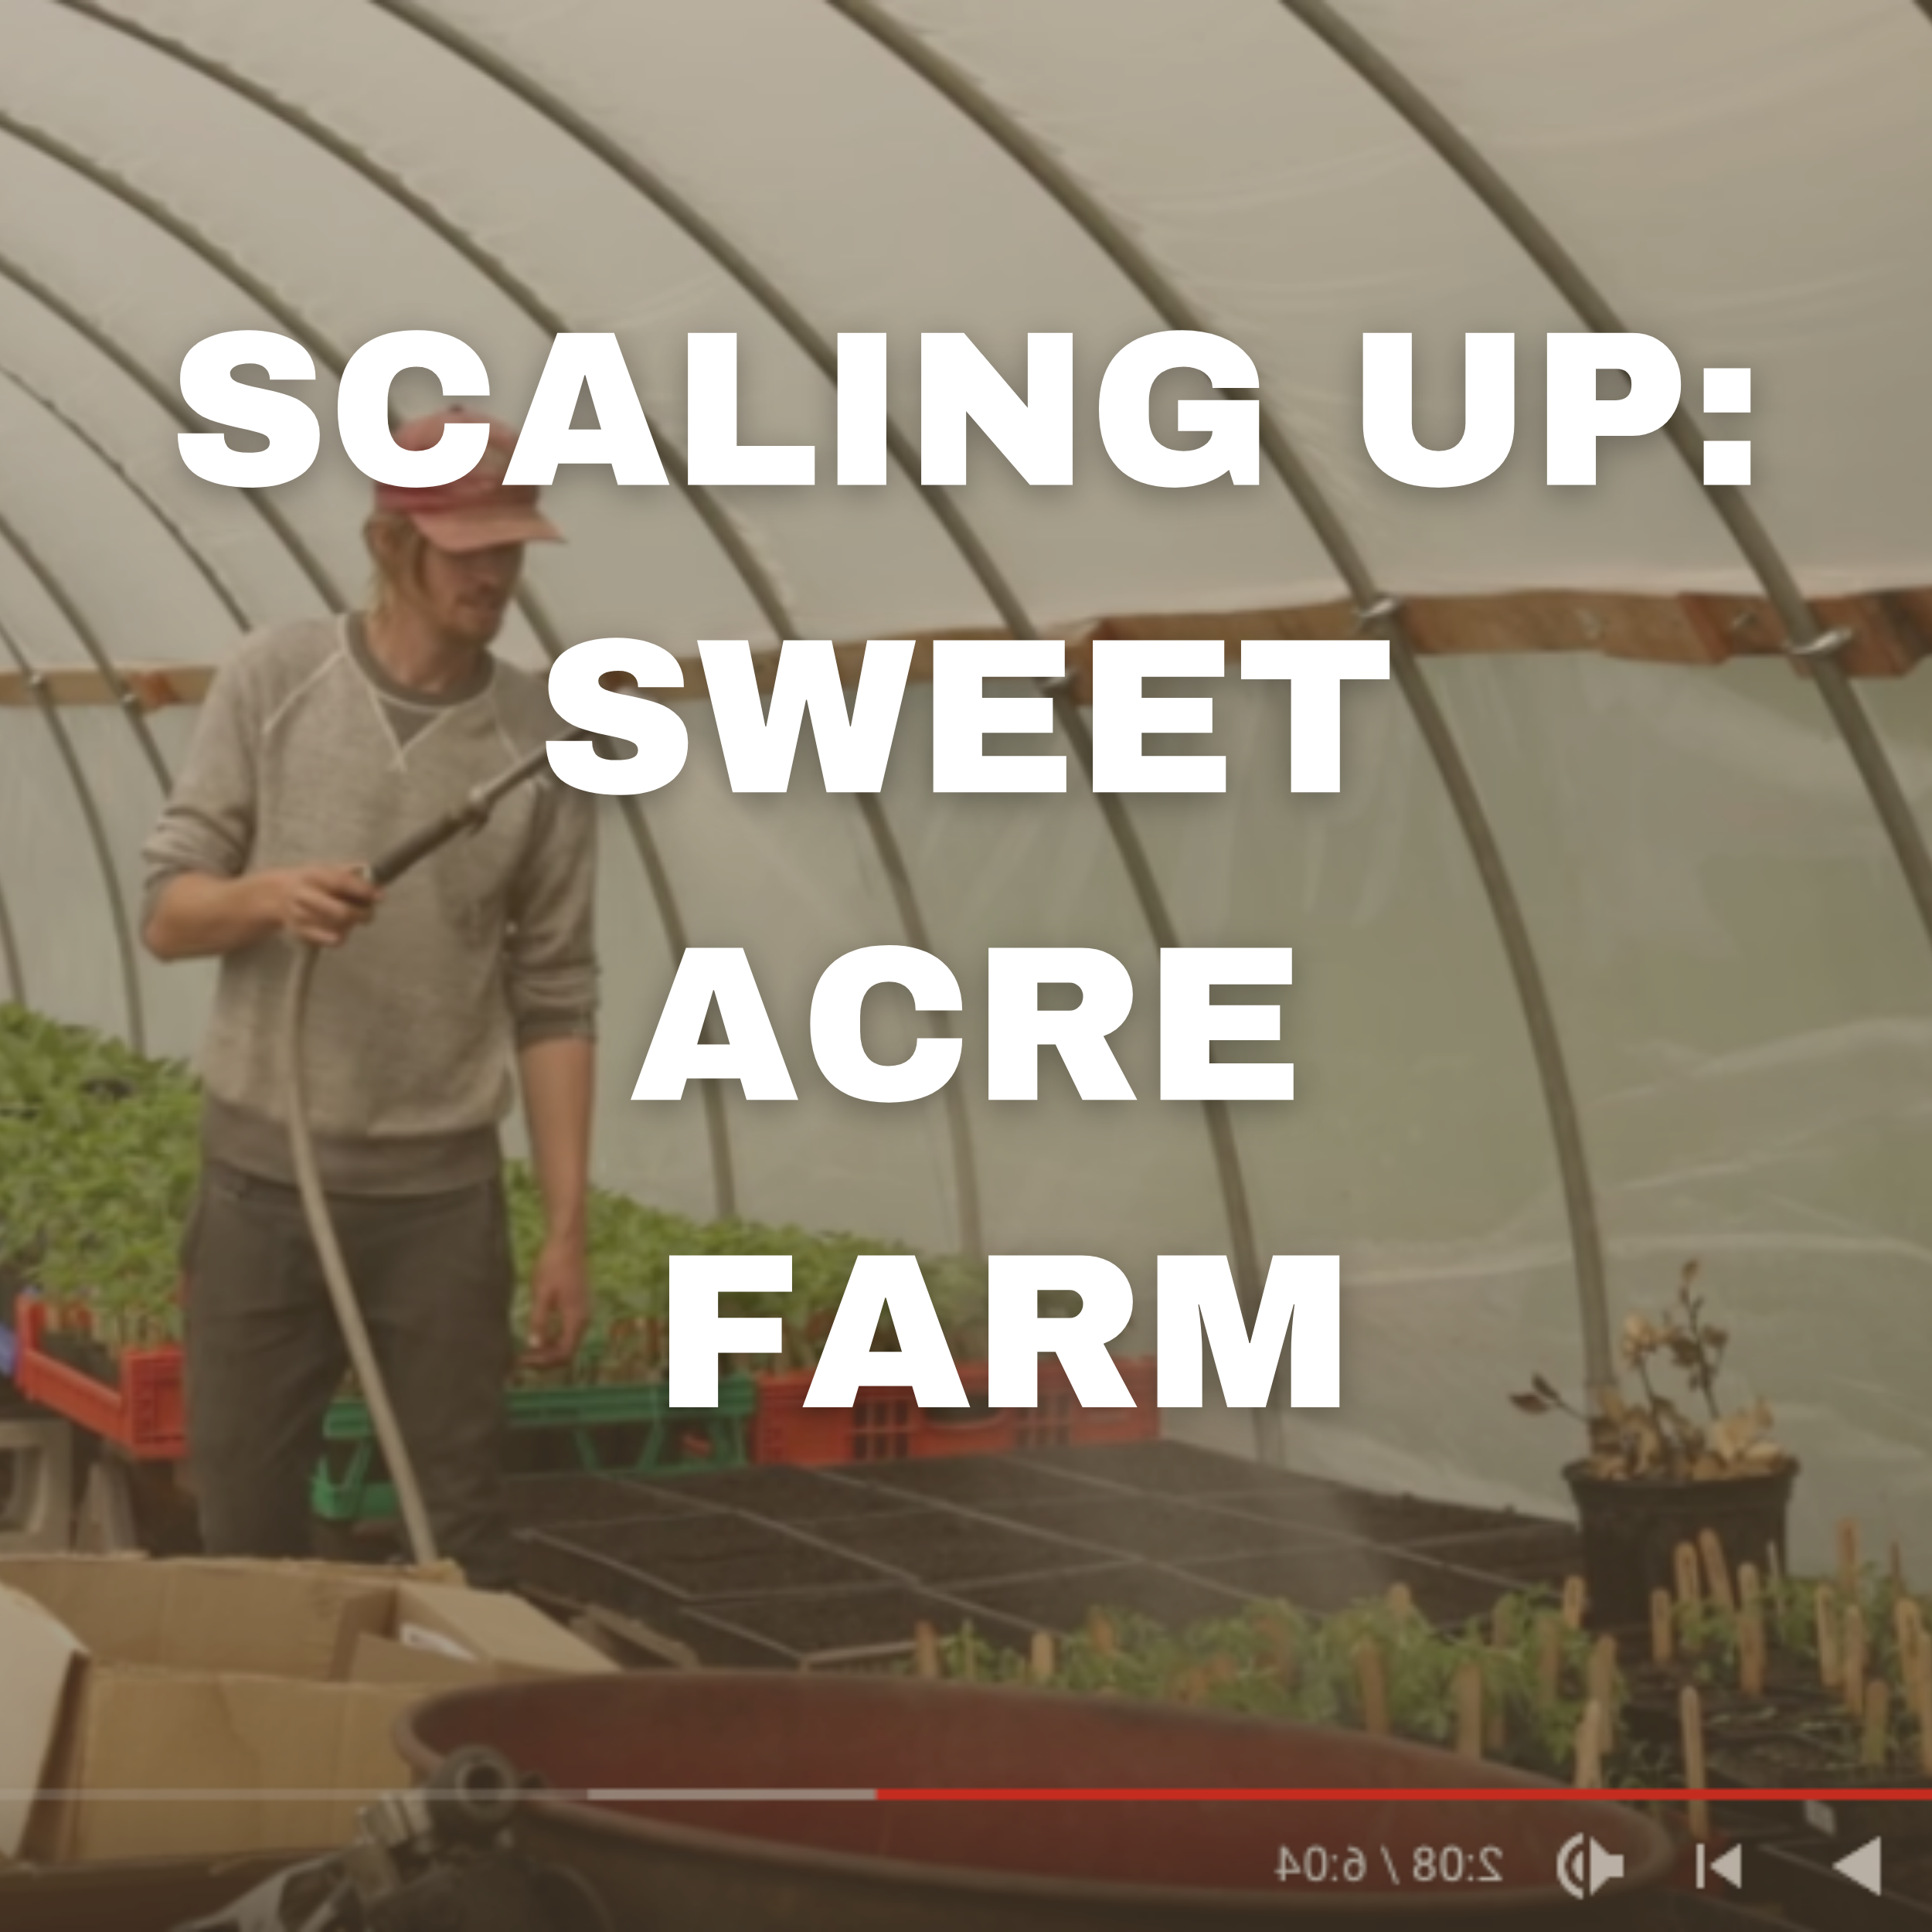 SCALING UP: SWEET acre farm